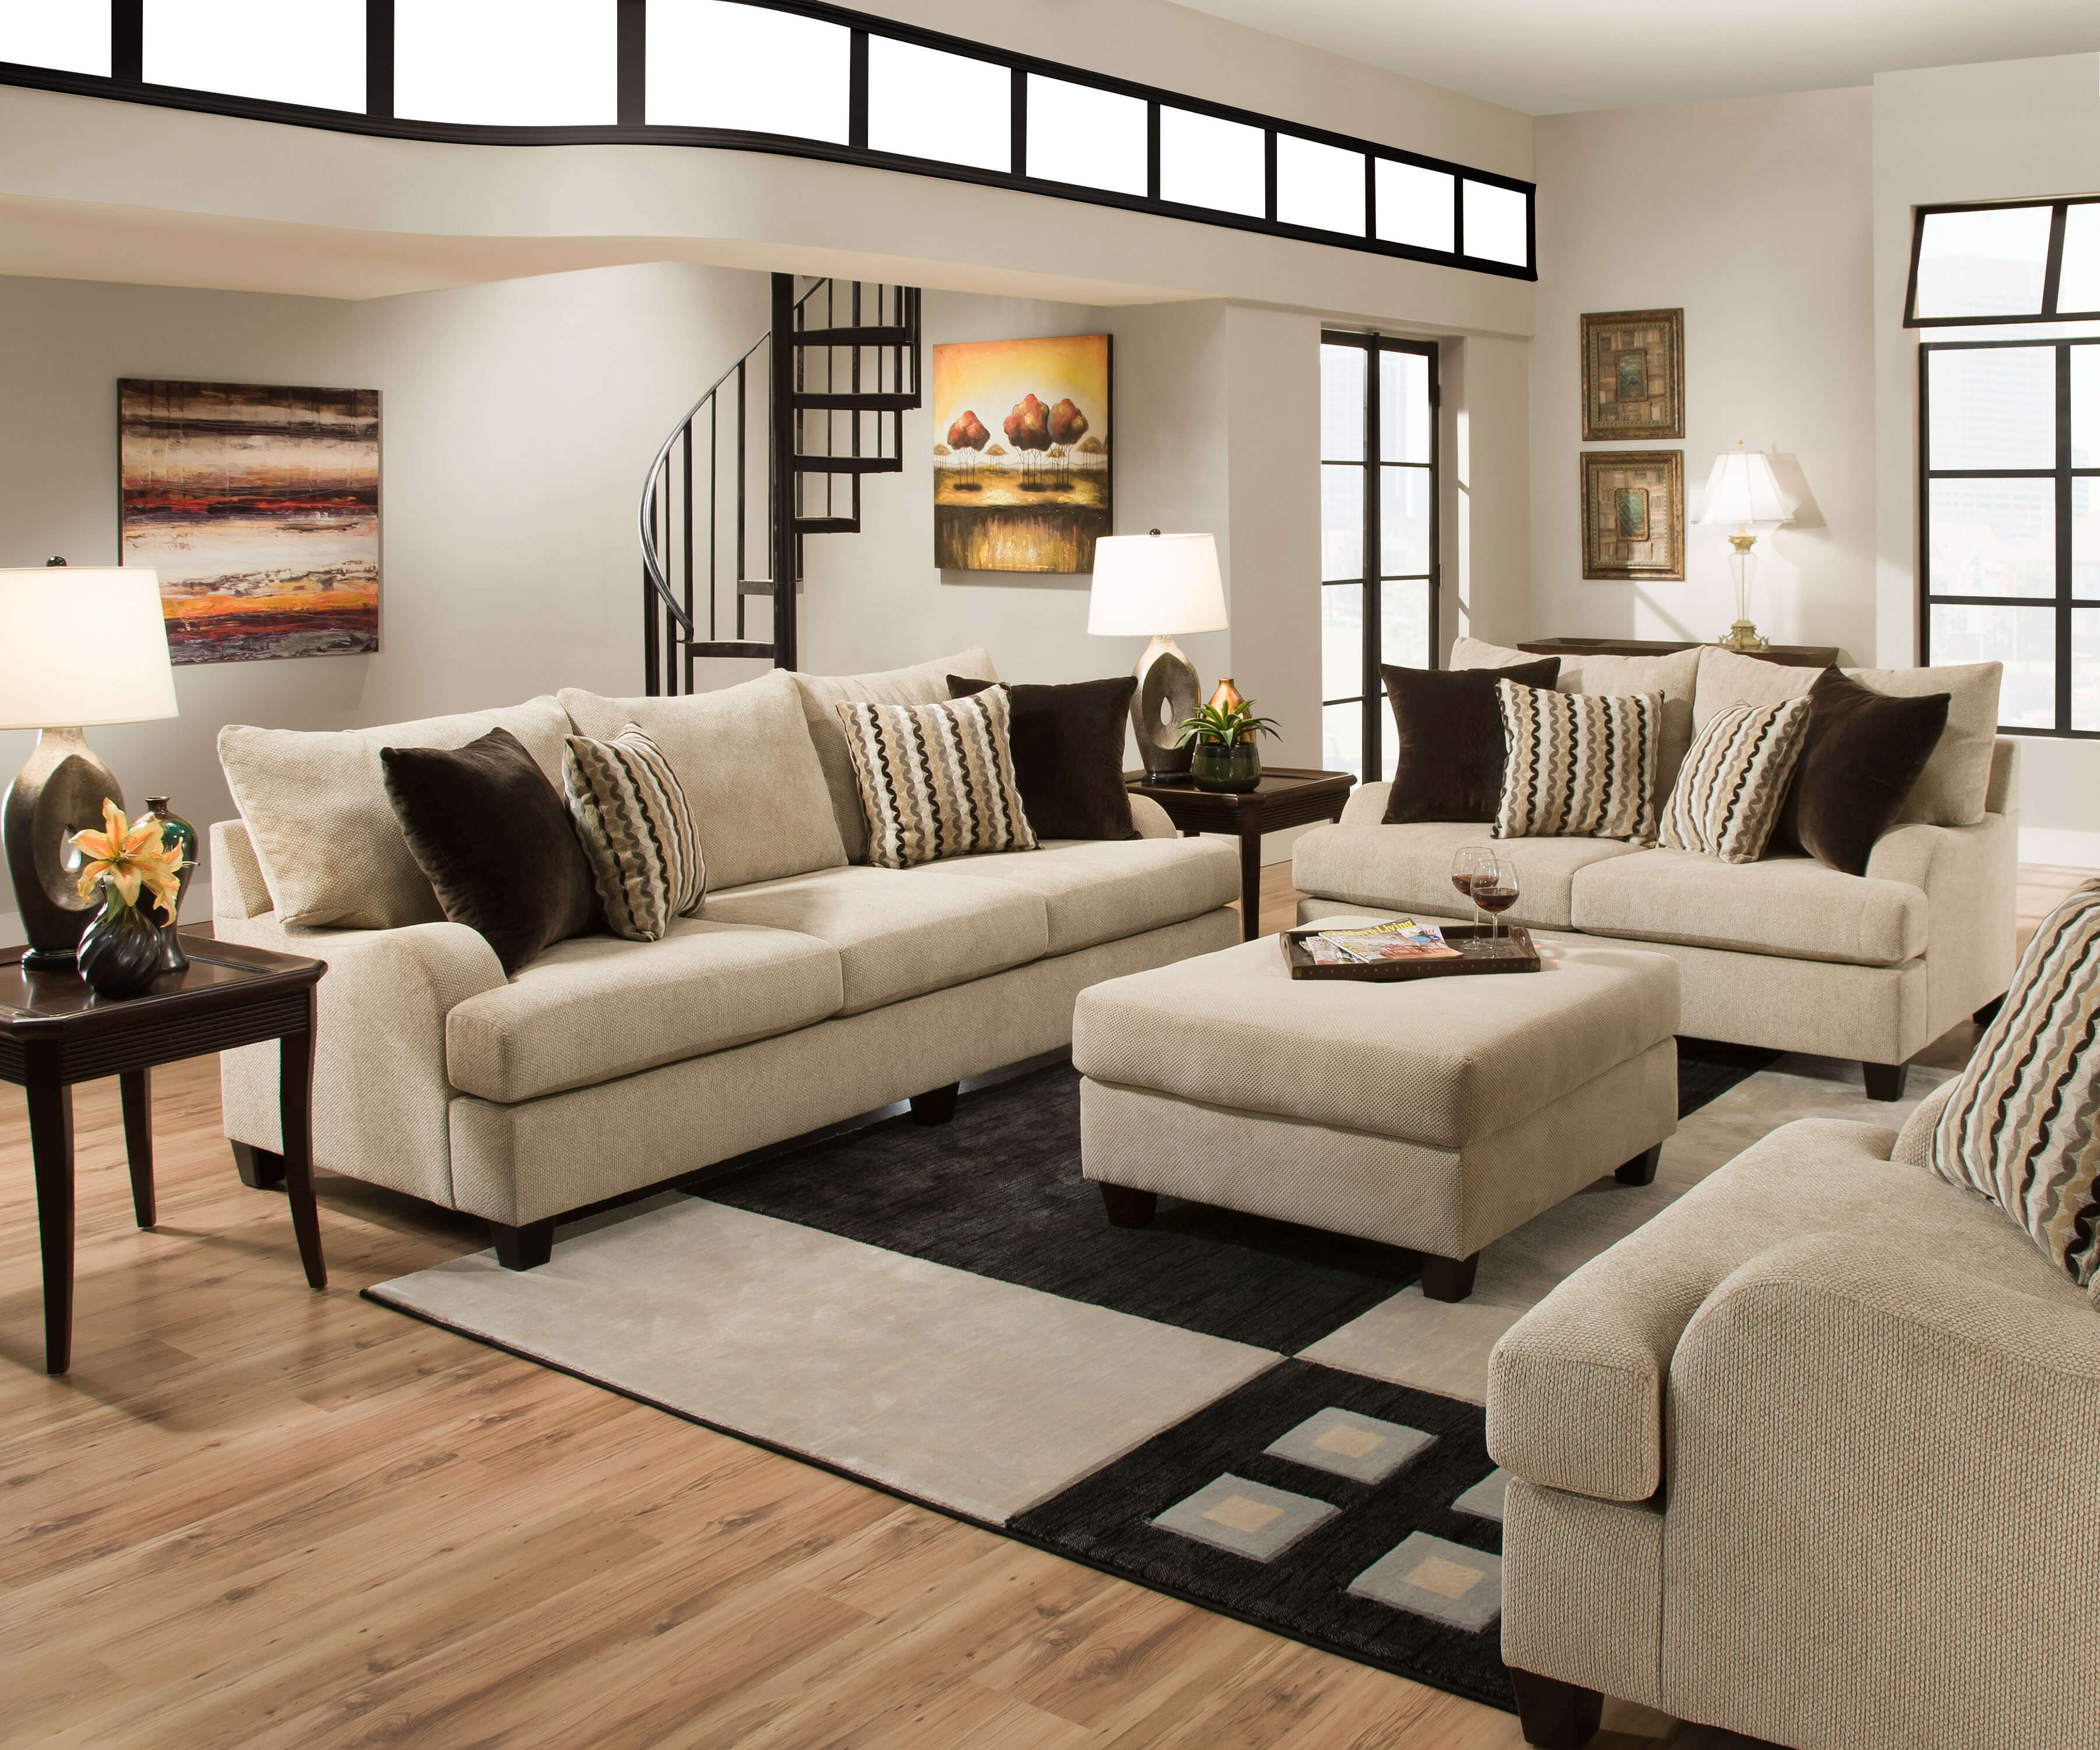 Furniture Living Room Chairs: Simmons Trinidad Taupe Living Room Set